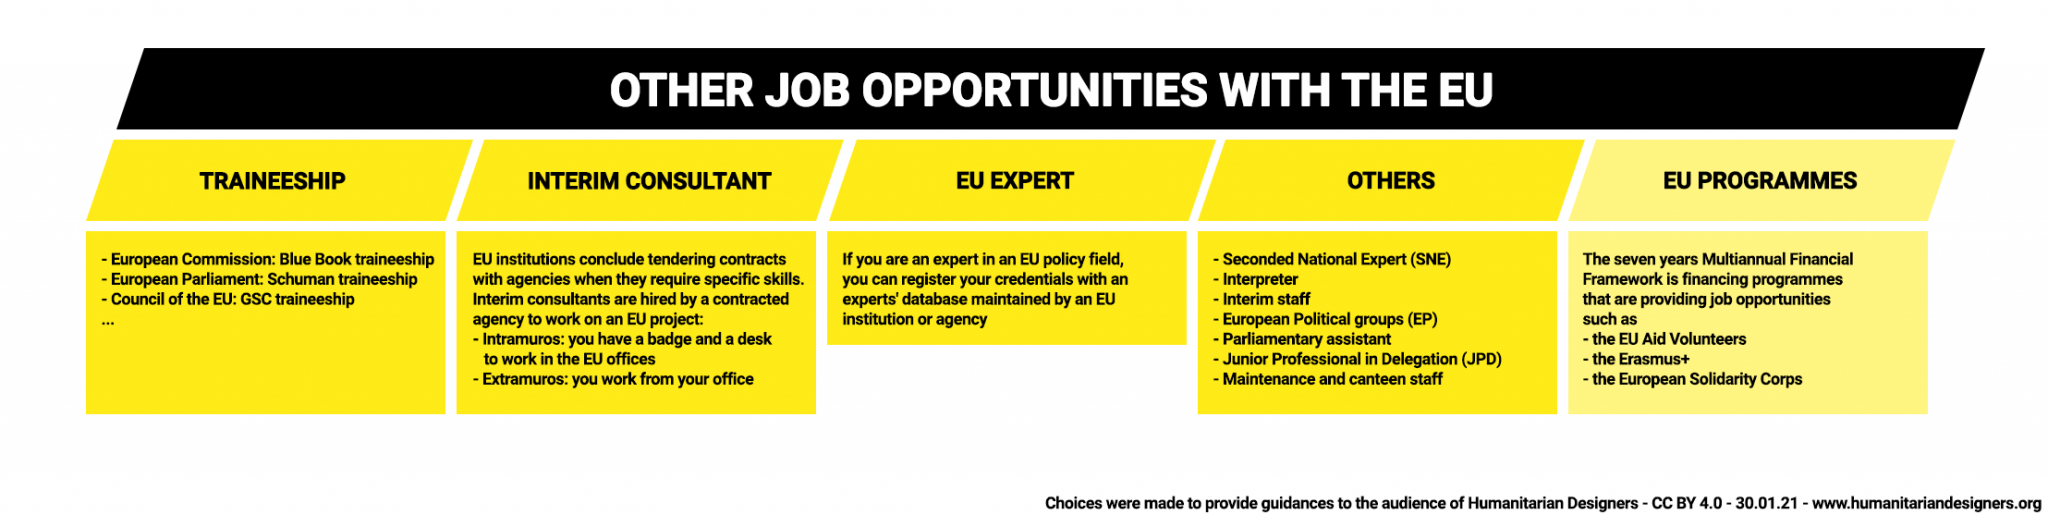 EU Other job opportunities with the EU EPSO